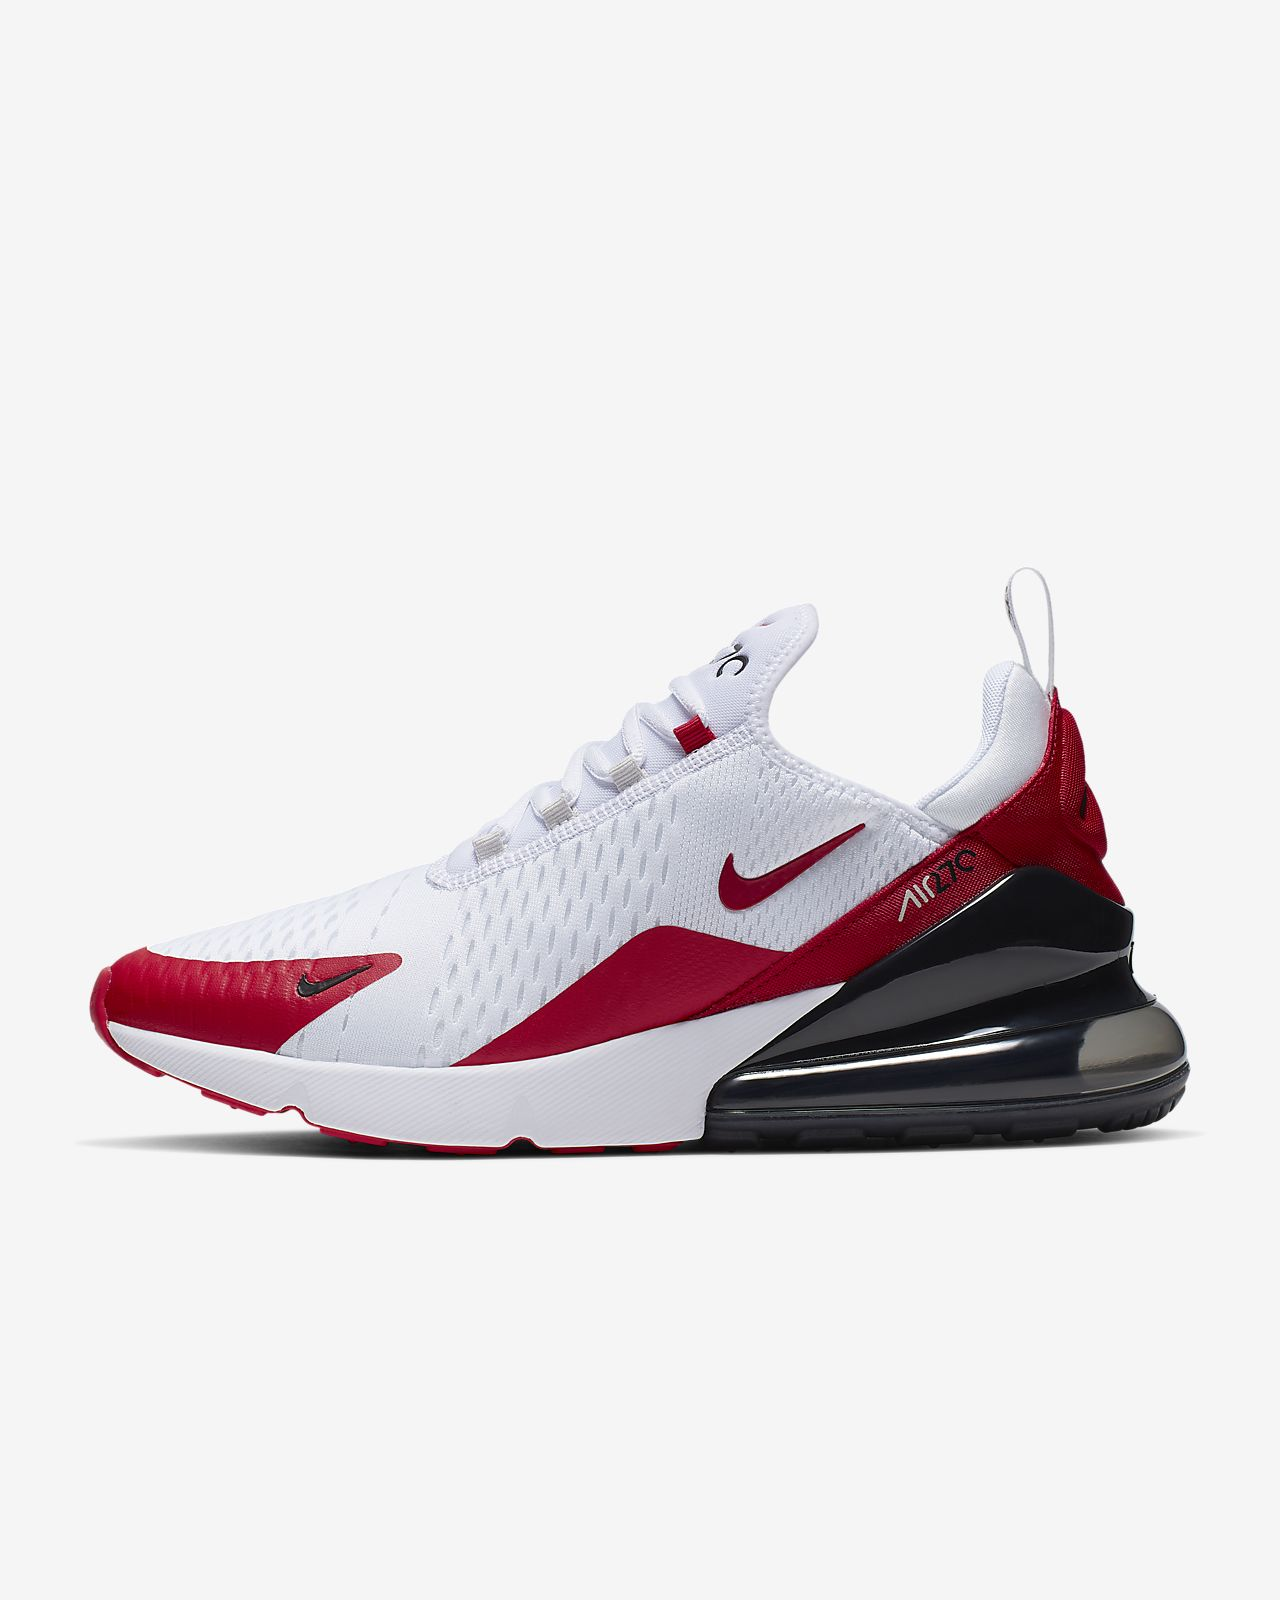 616da4f7c6 Nike Air Max 270 Men's Shoe. Nike.com